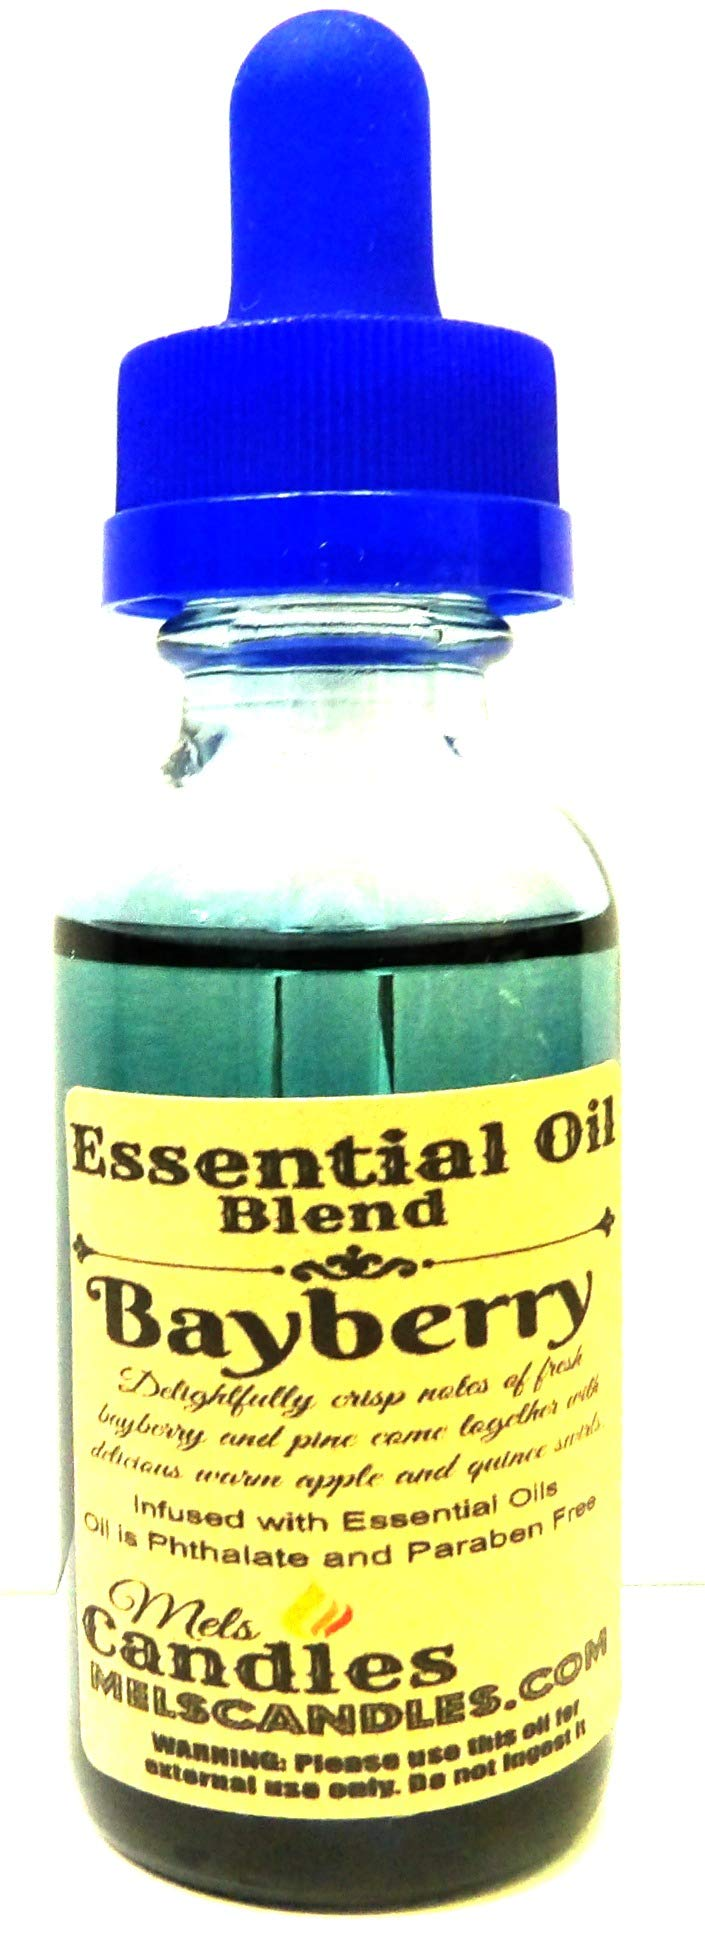 Mels Candles & More Bayberry 1 Ounce / 29.5 ml Blue Glass Bottle of Premium Grade A, Skin Safe Fragrance/Essential Oil Blend.